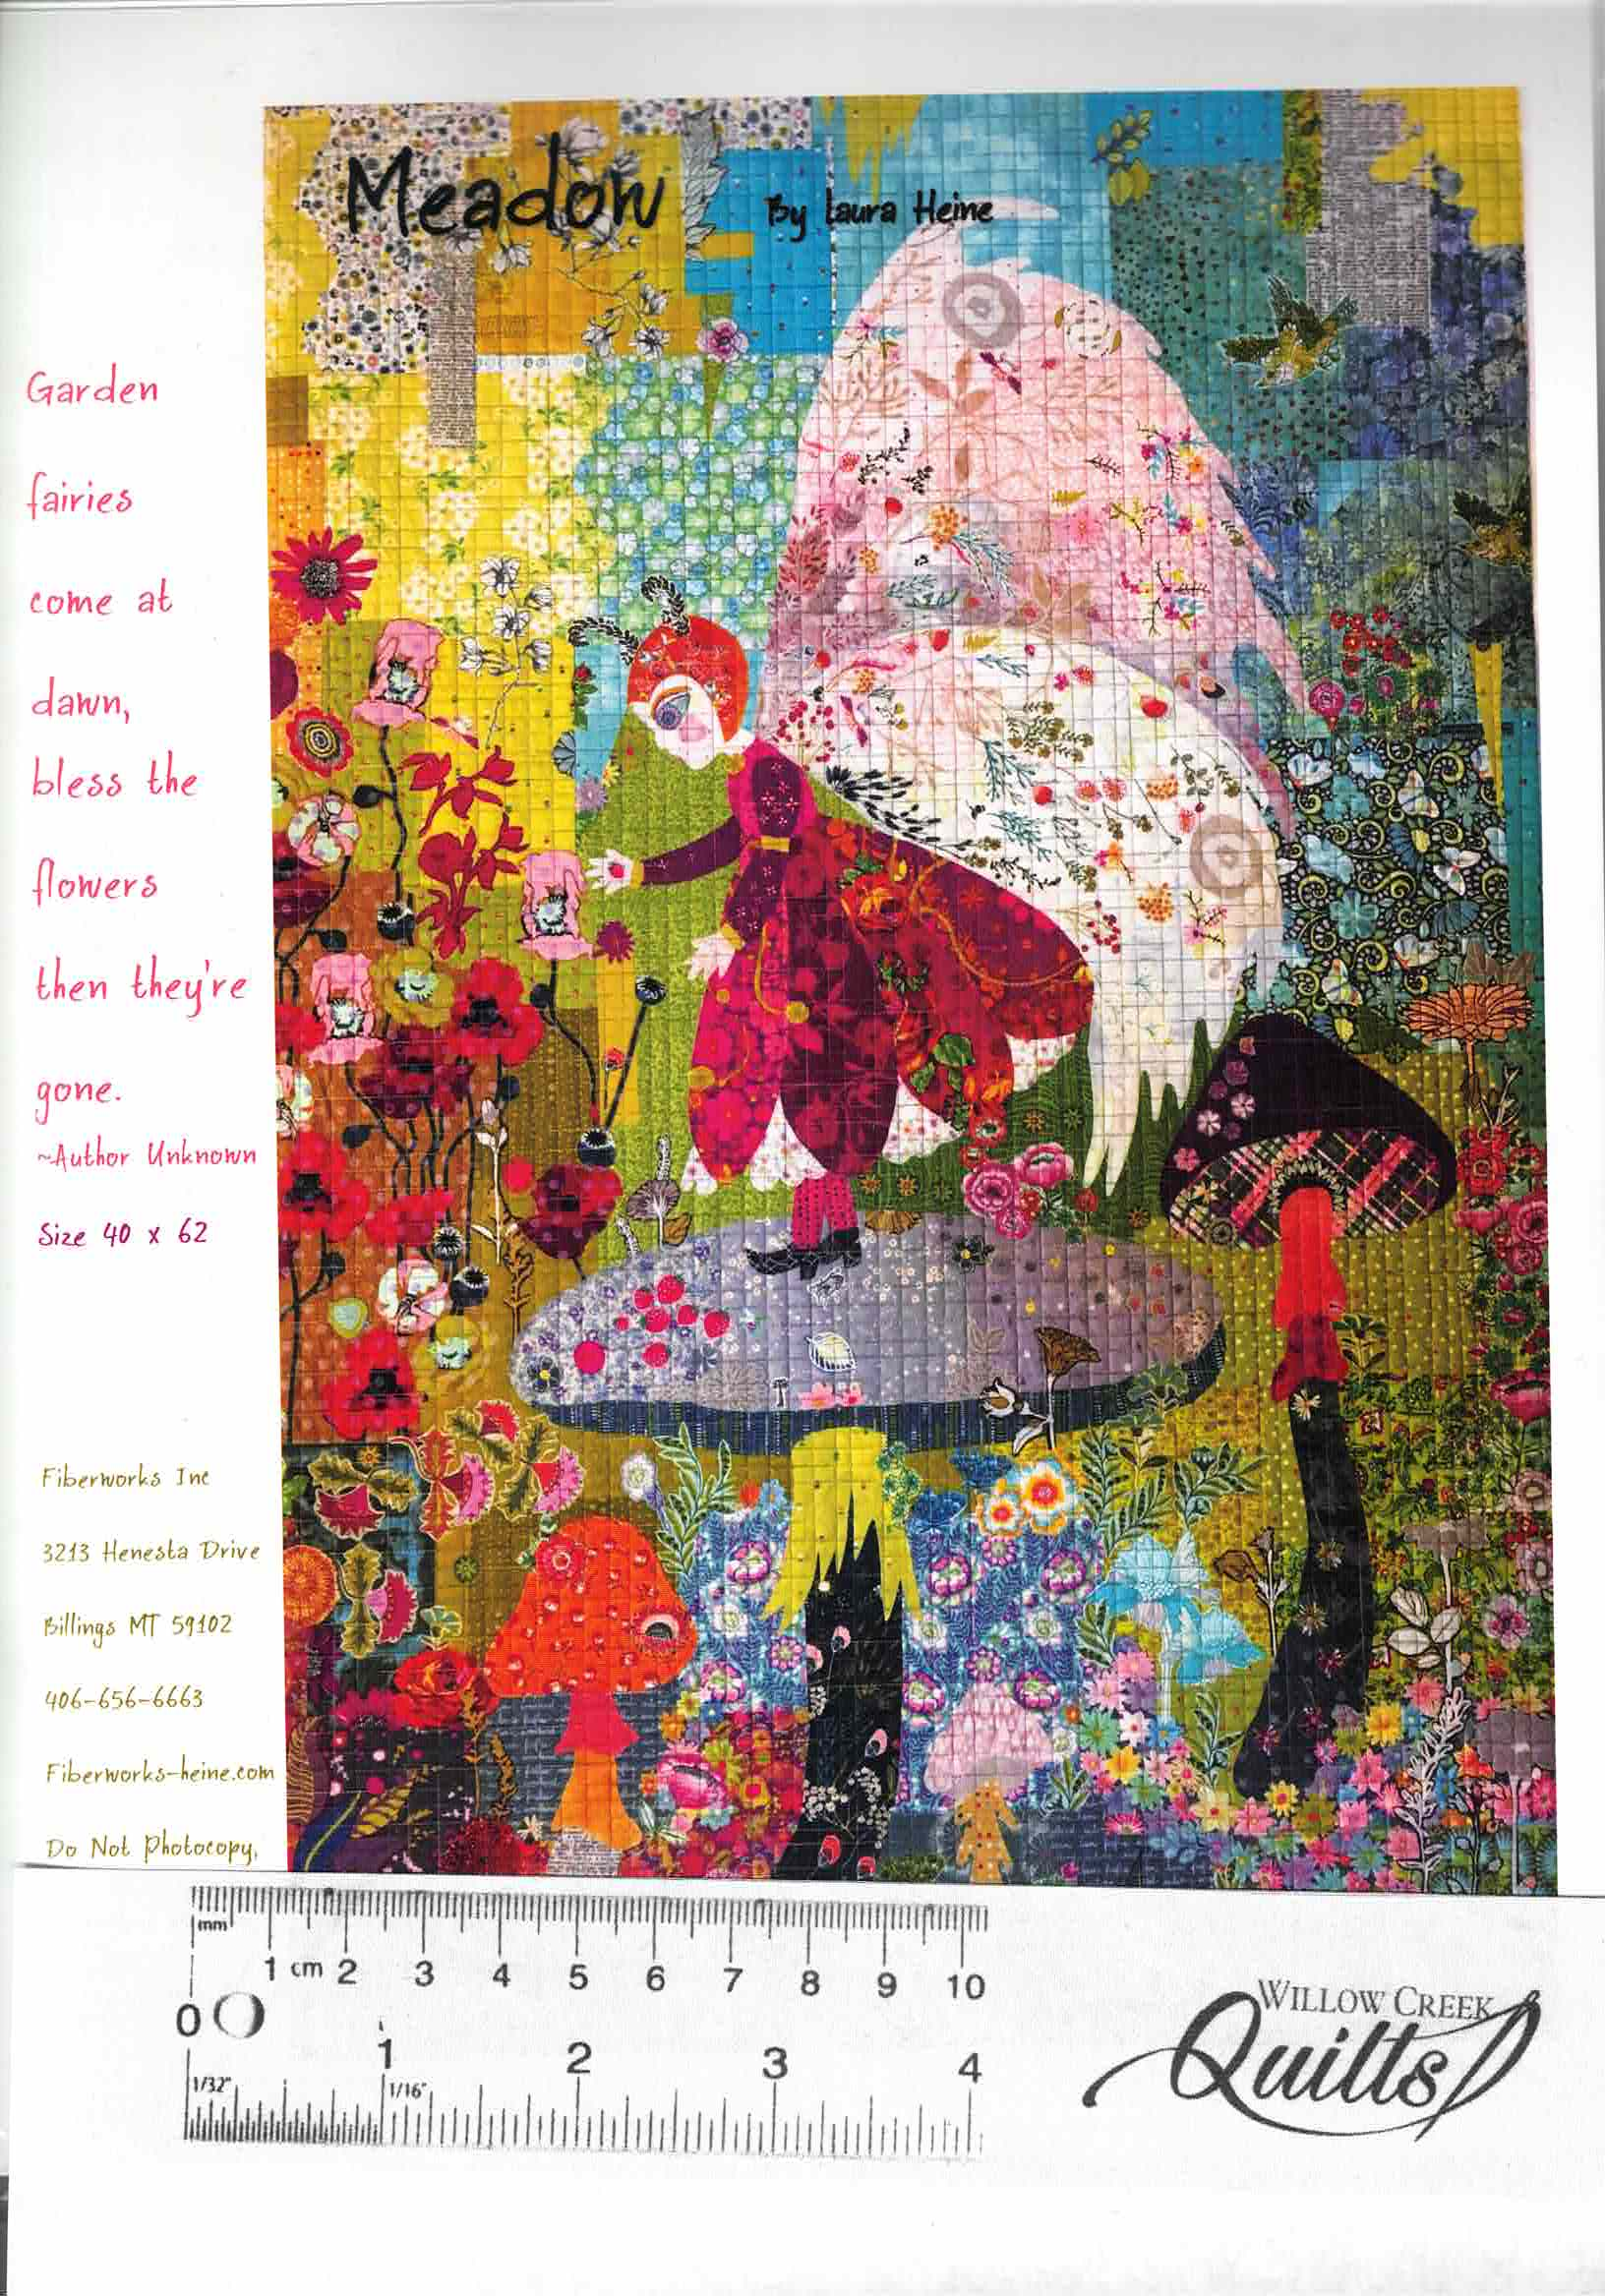 Meadow Fairy Collage pattern - by Laura Heine